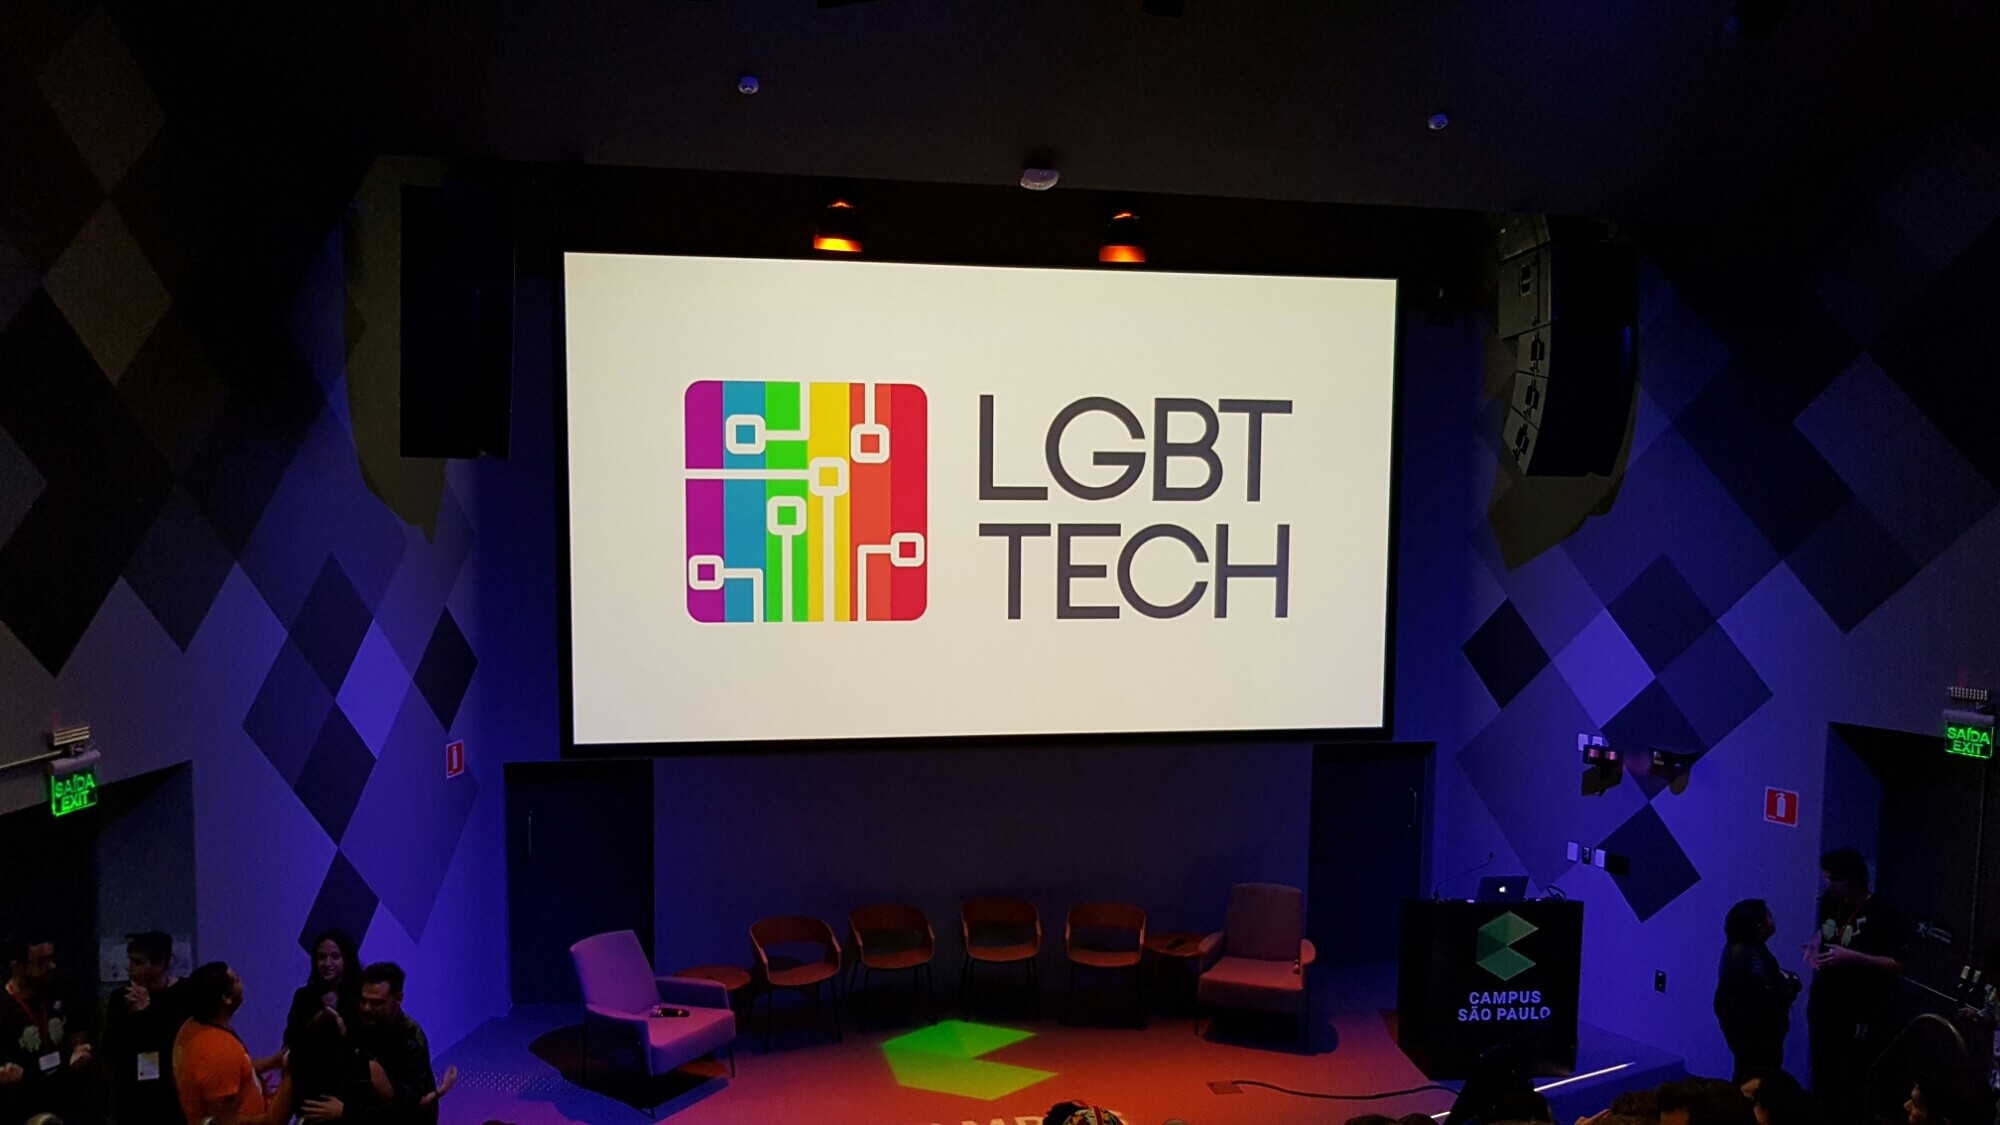 Google Campus recebe o LGBT TECH 3